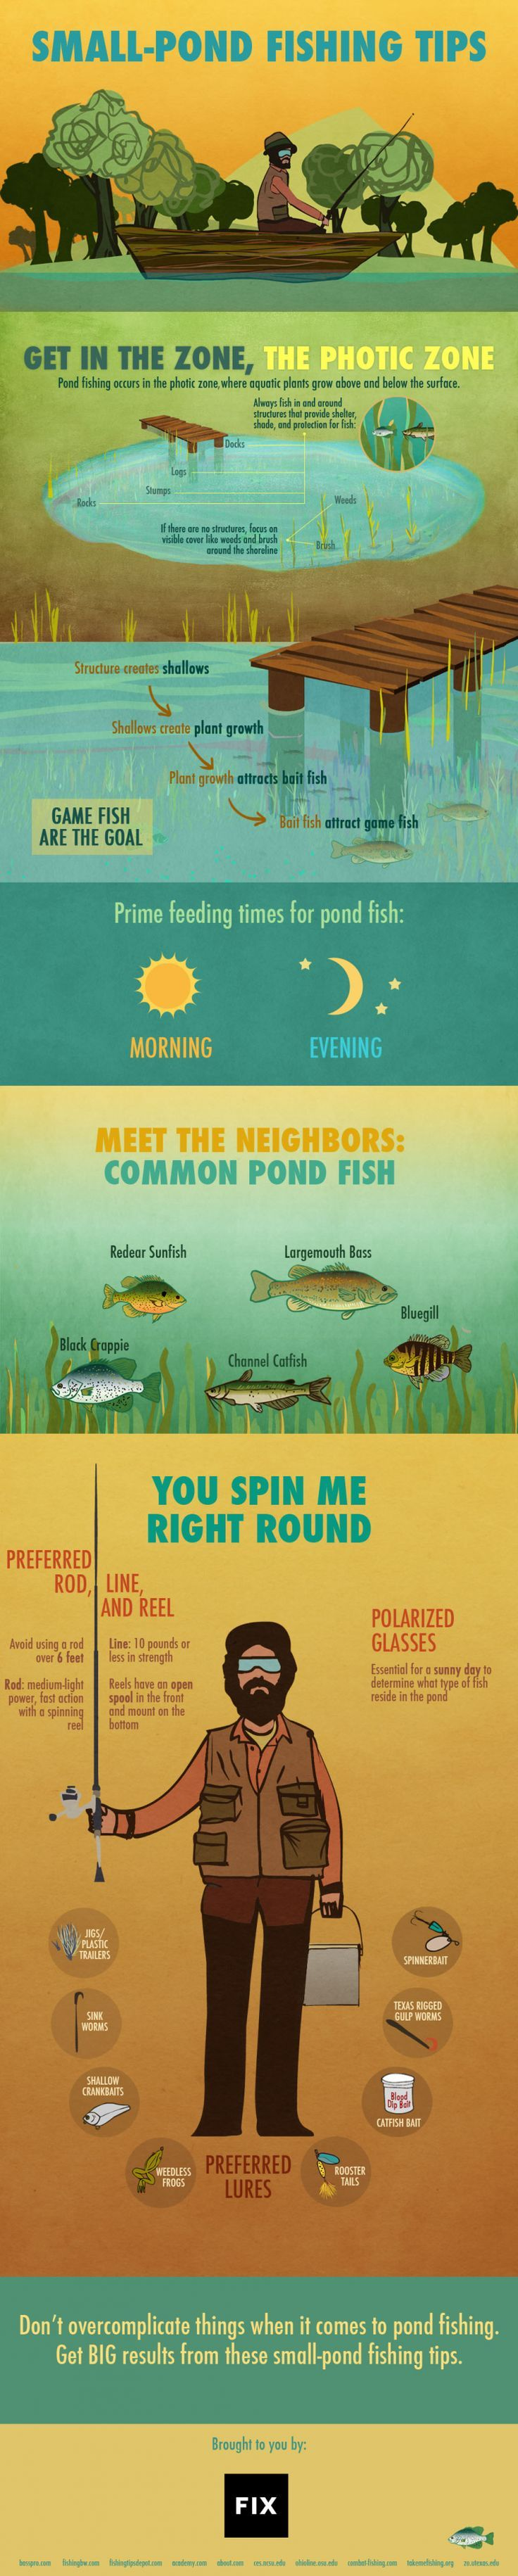 Small Pond Fishing: Simple Tips to Help You Catch More Fish http://www.survivalistalerts.com/small-pond-fishing-tips/